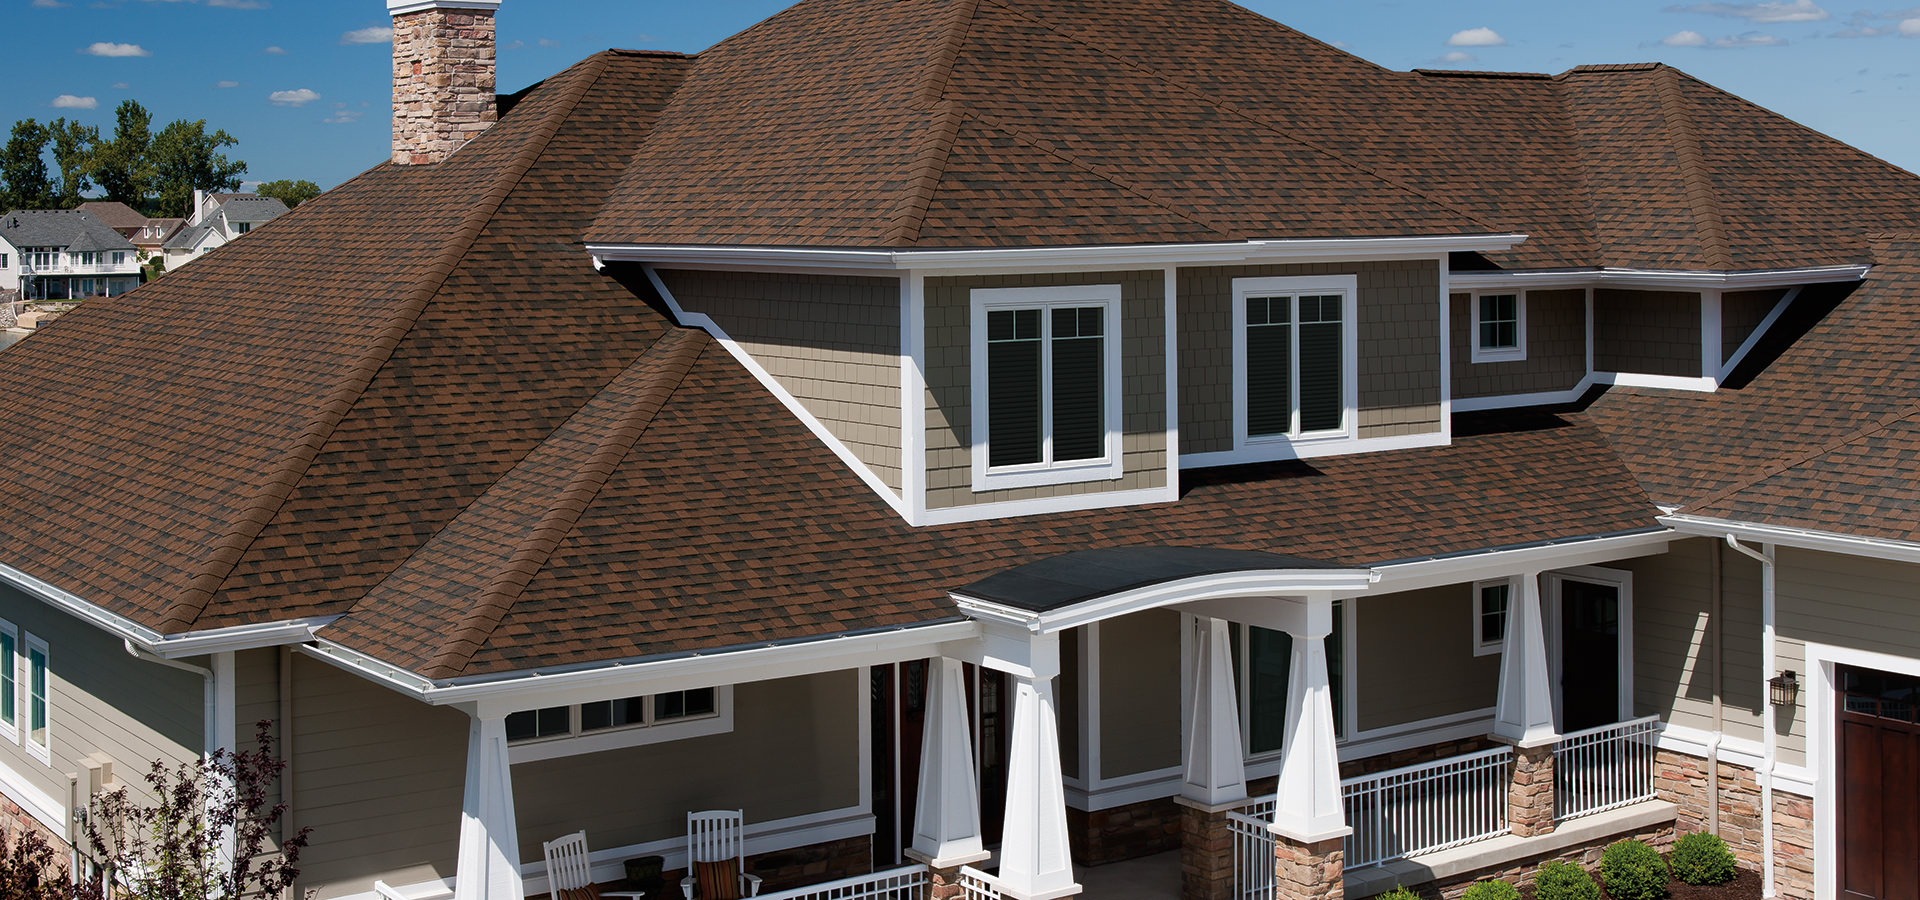 image - Top Roofing Tips for a Long-lasting and Productive Home